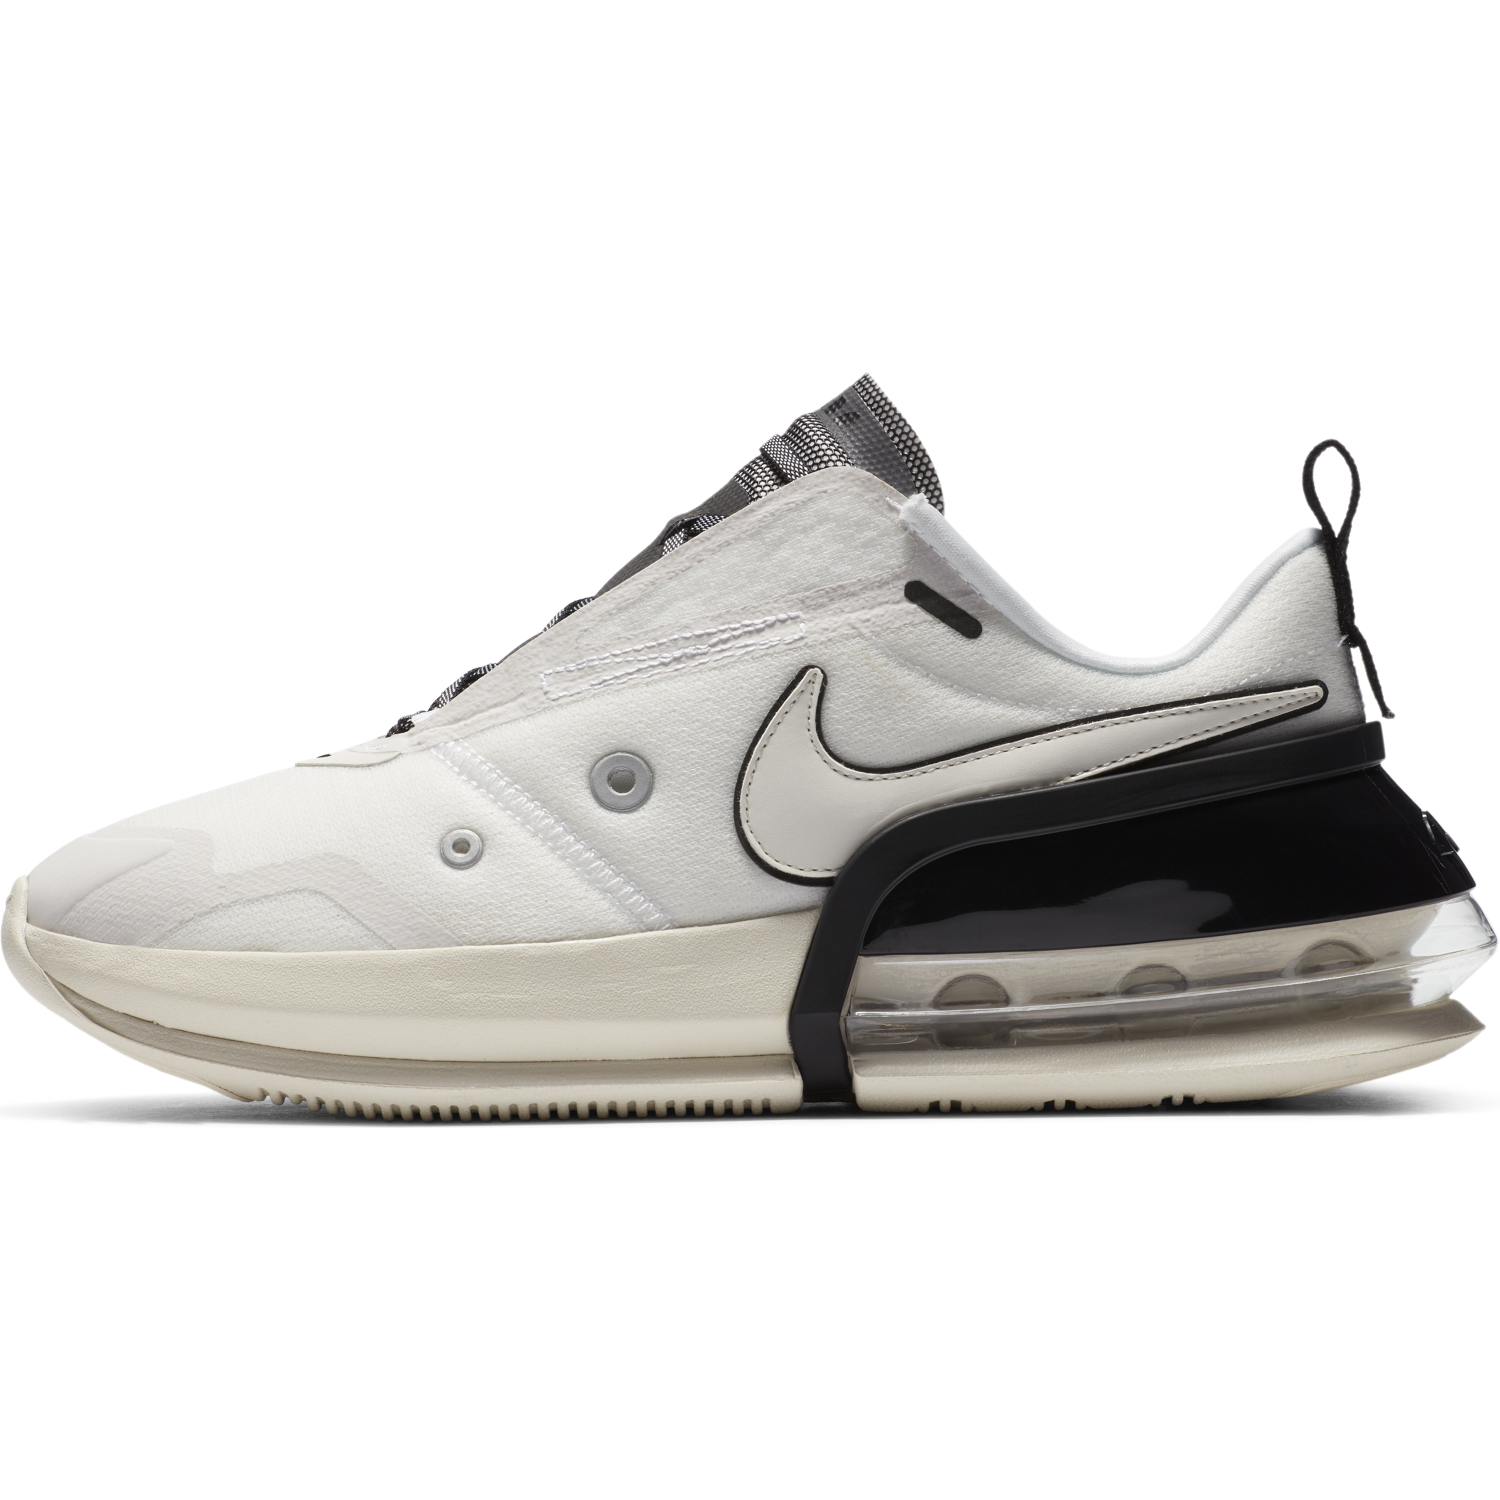 NIKE W'S FOOTWEAR AIR MAX UP QS - WHITE/PALE IVORY